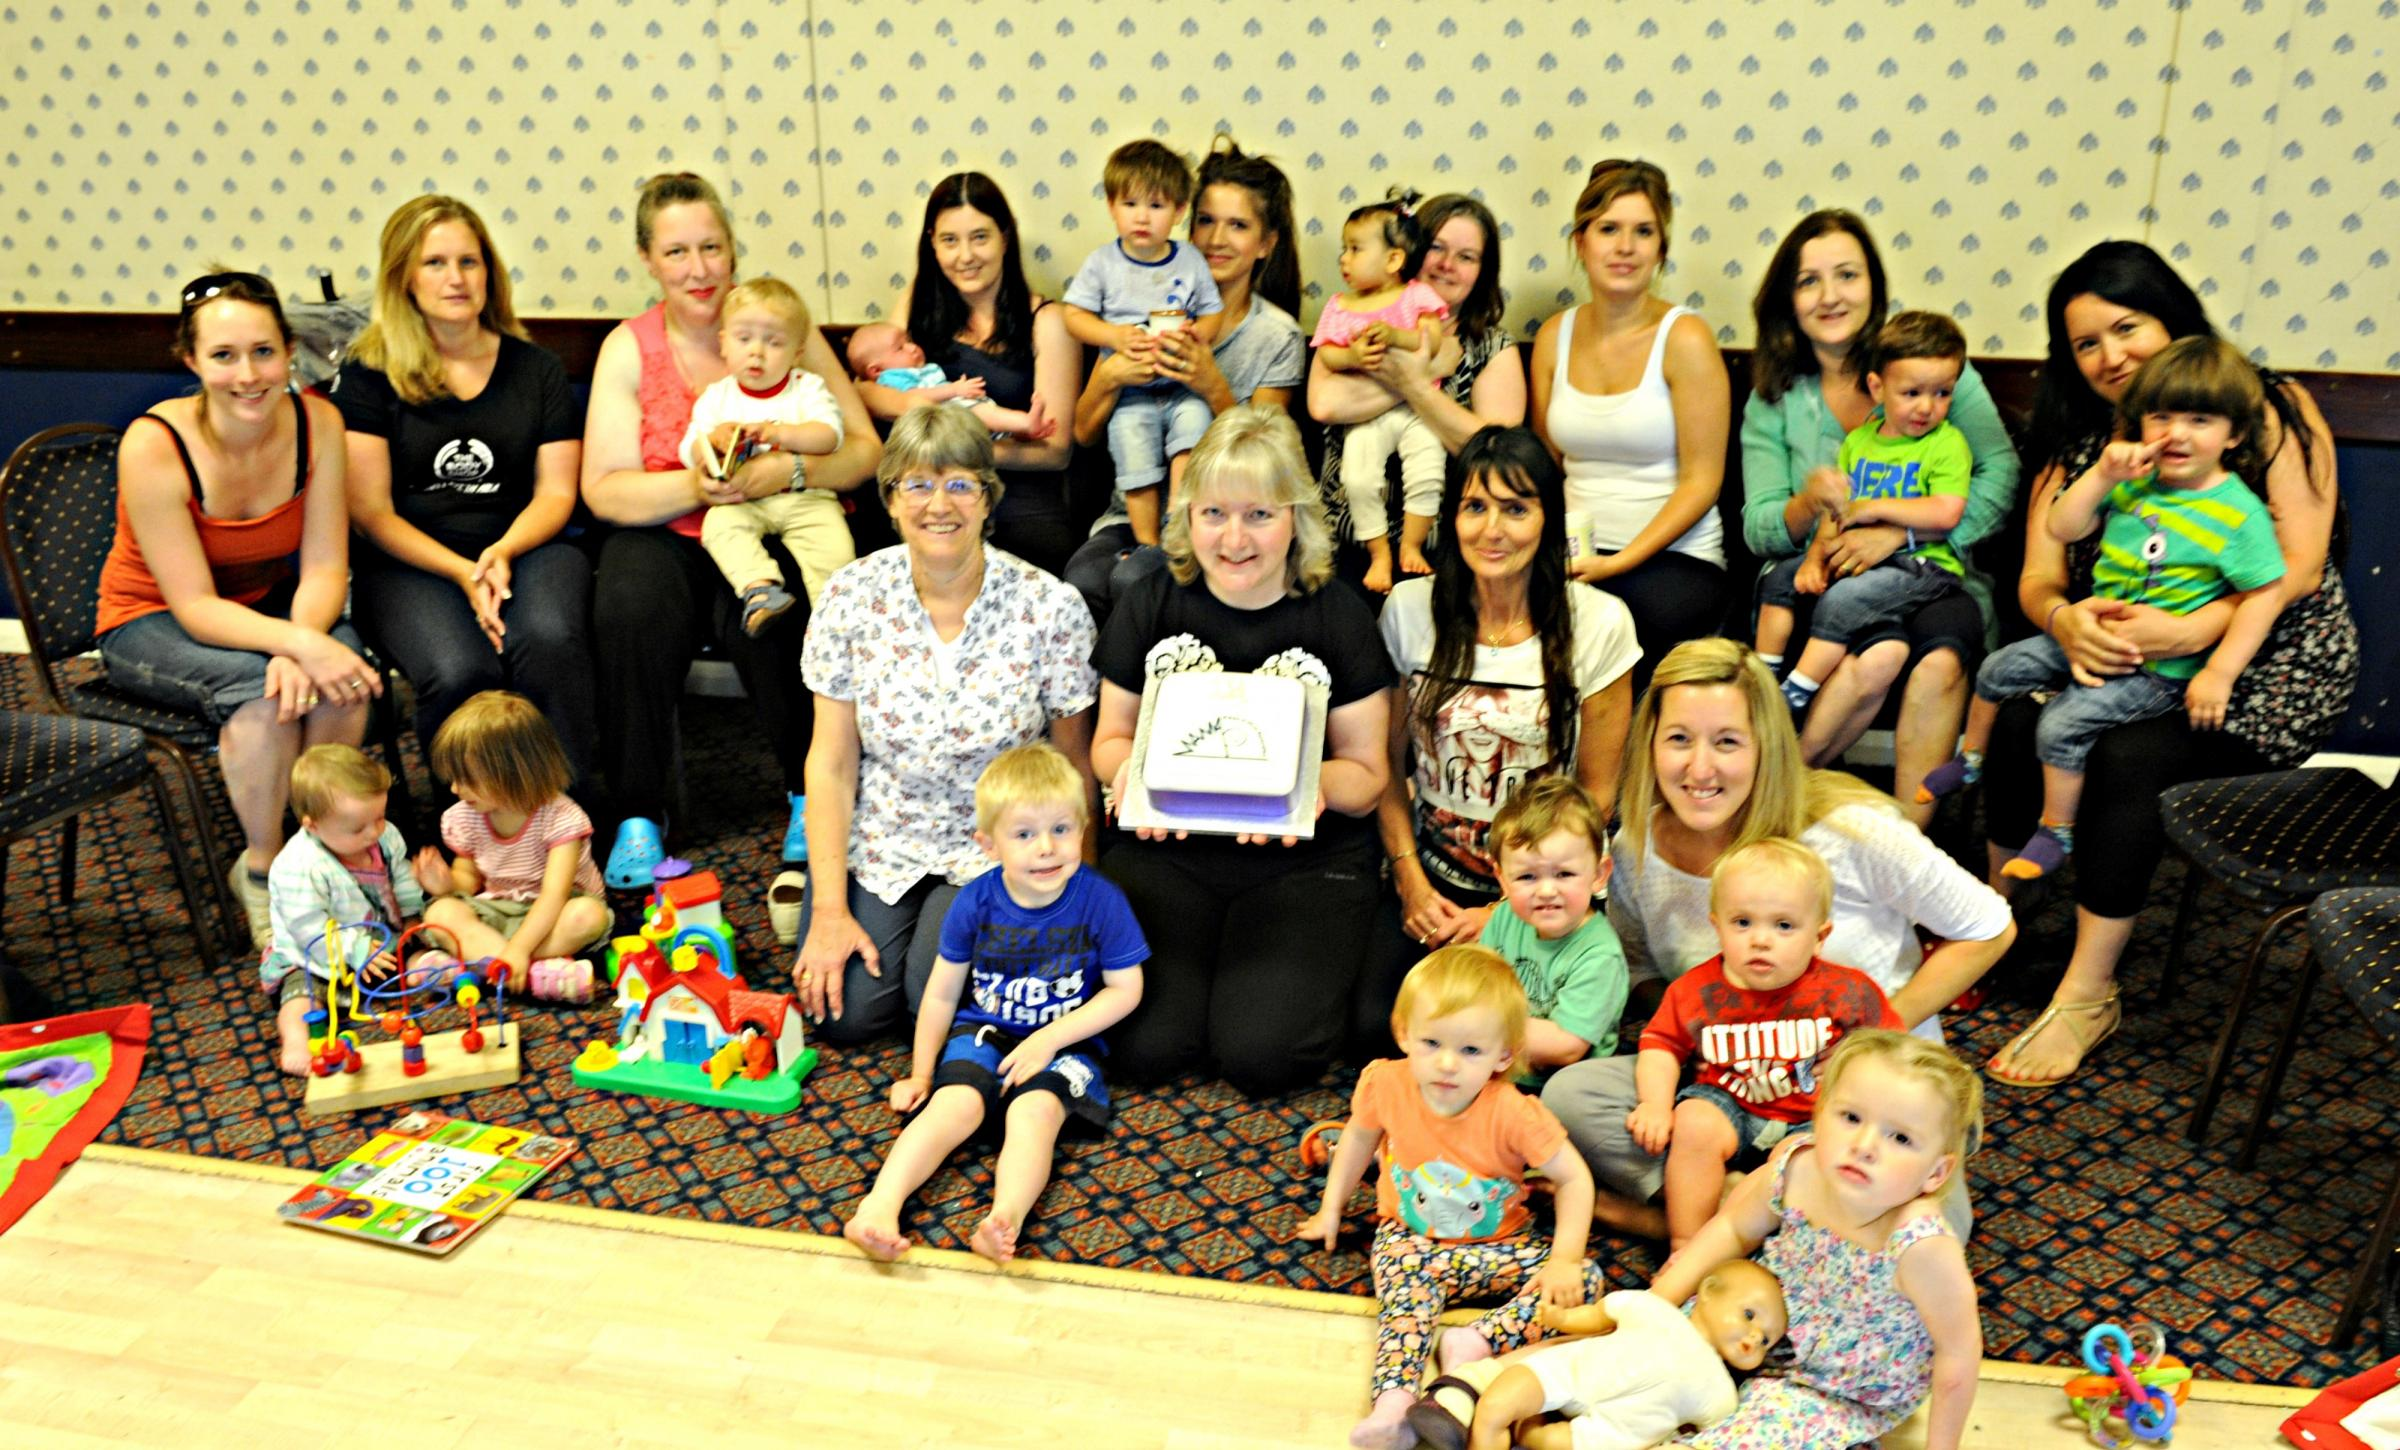 SR_89_001     Mums, children staff of the Yate Meet a Mum Association which is closing after 19 years (7740088)